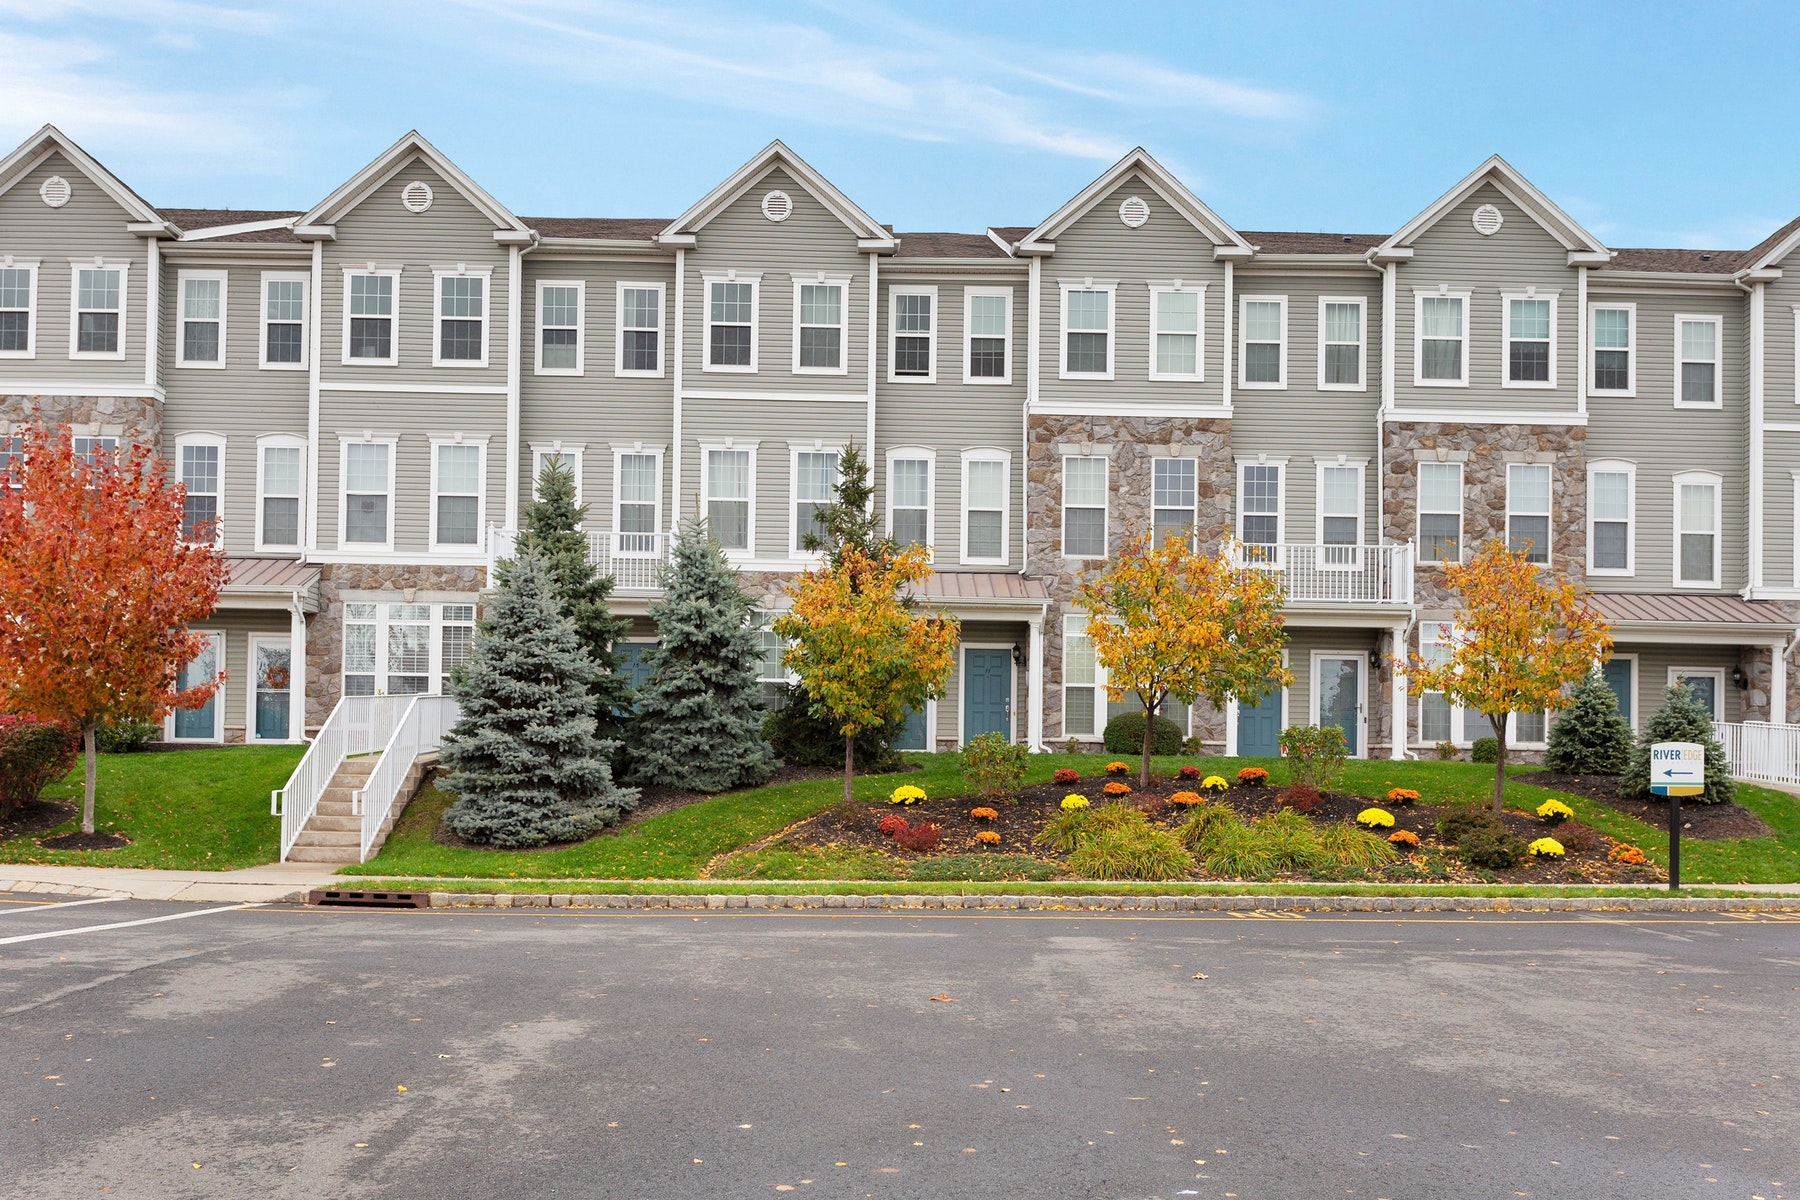 Condominium for Sale at Spacious Townhome 19 Aster Lane, Garfield, New Jersey 07026 United States